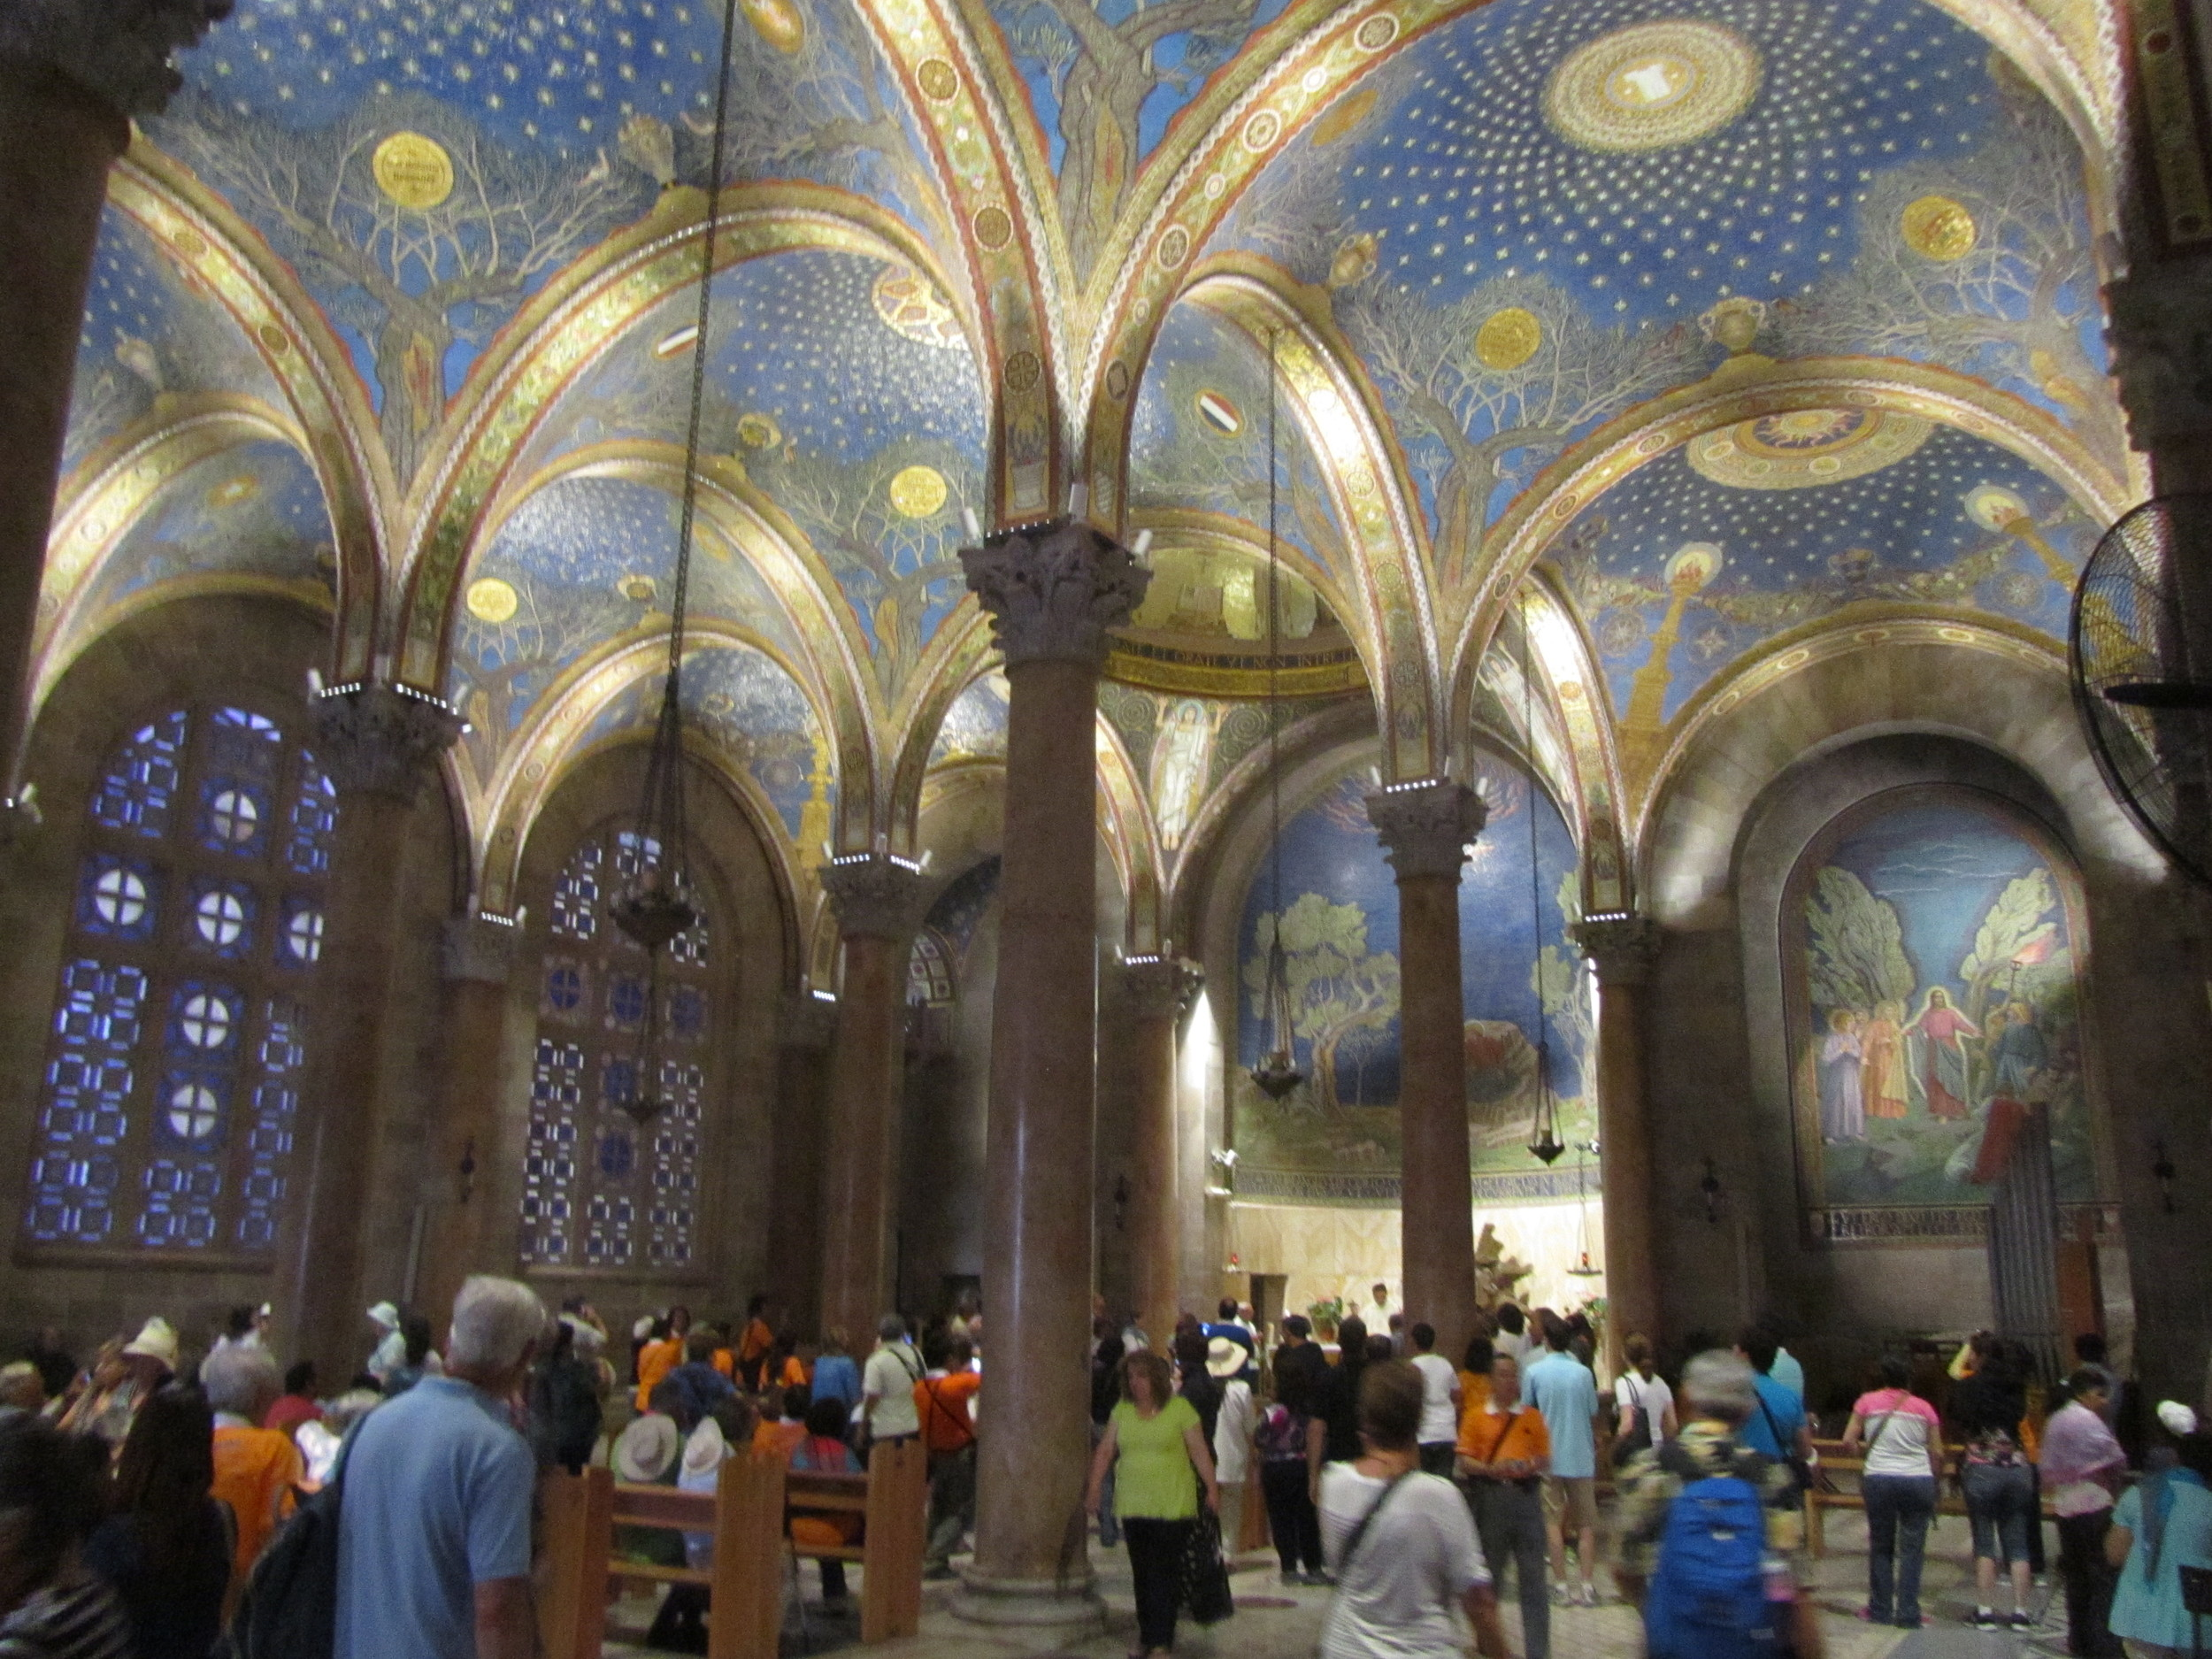 The Interior of the Church of All Nations in Gethsemane